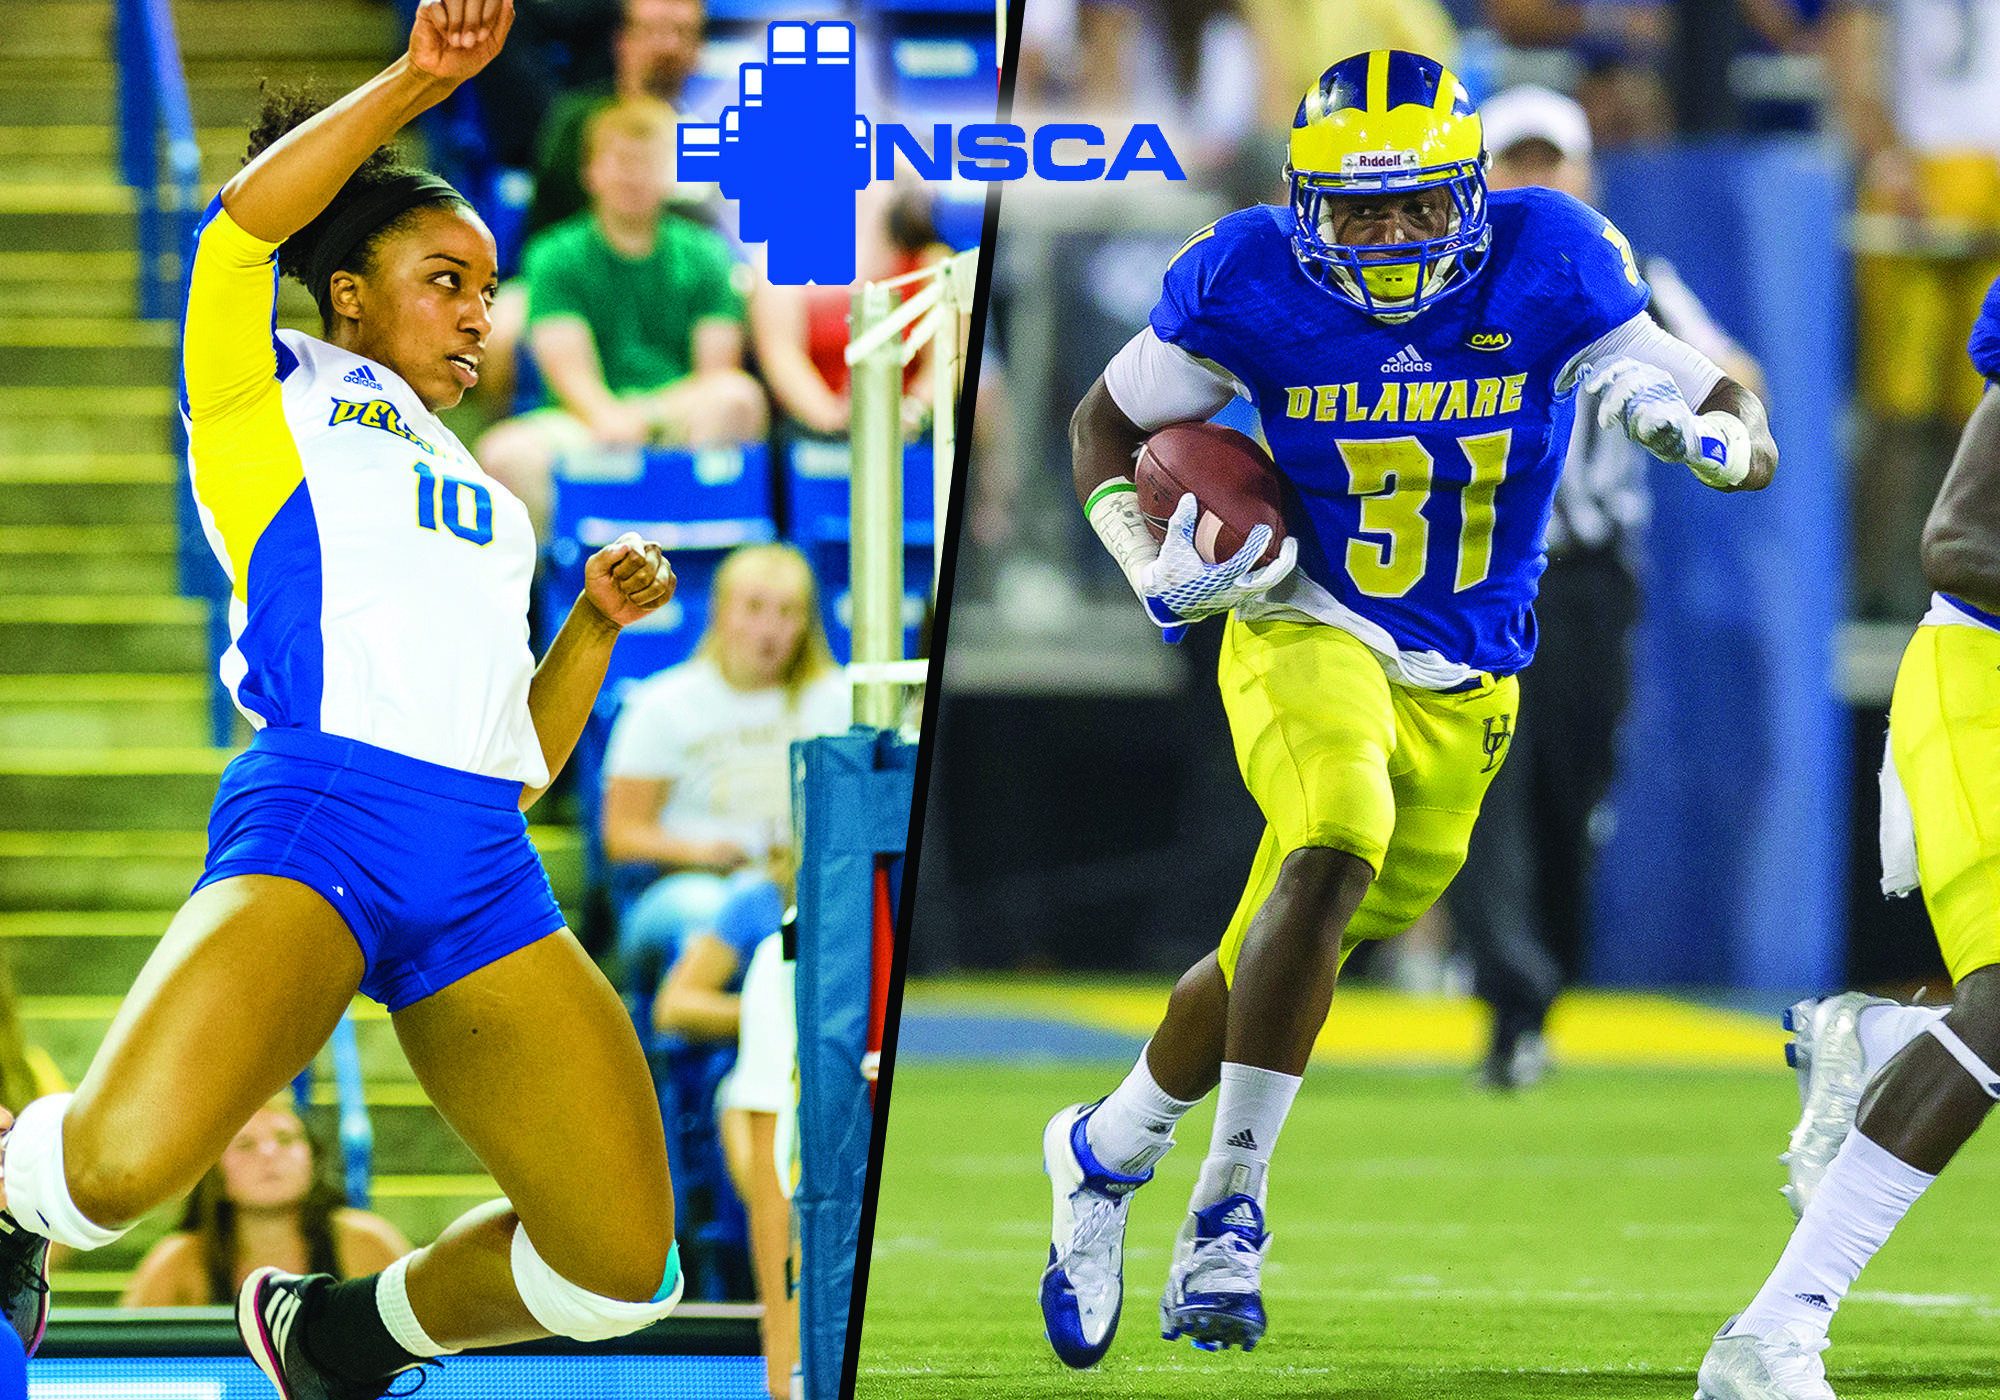 uk availability 198a0 dbd24 Wes Hills, Chandler Bryant Honored by National Strength ...